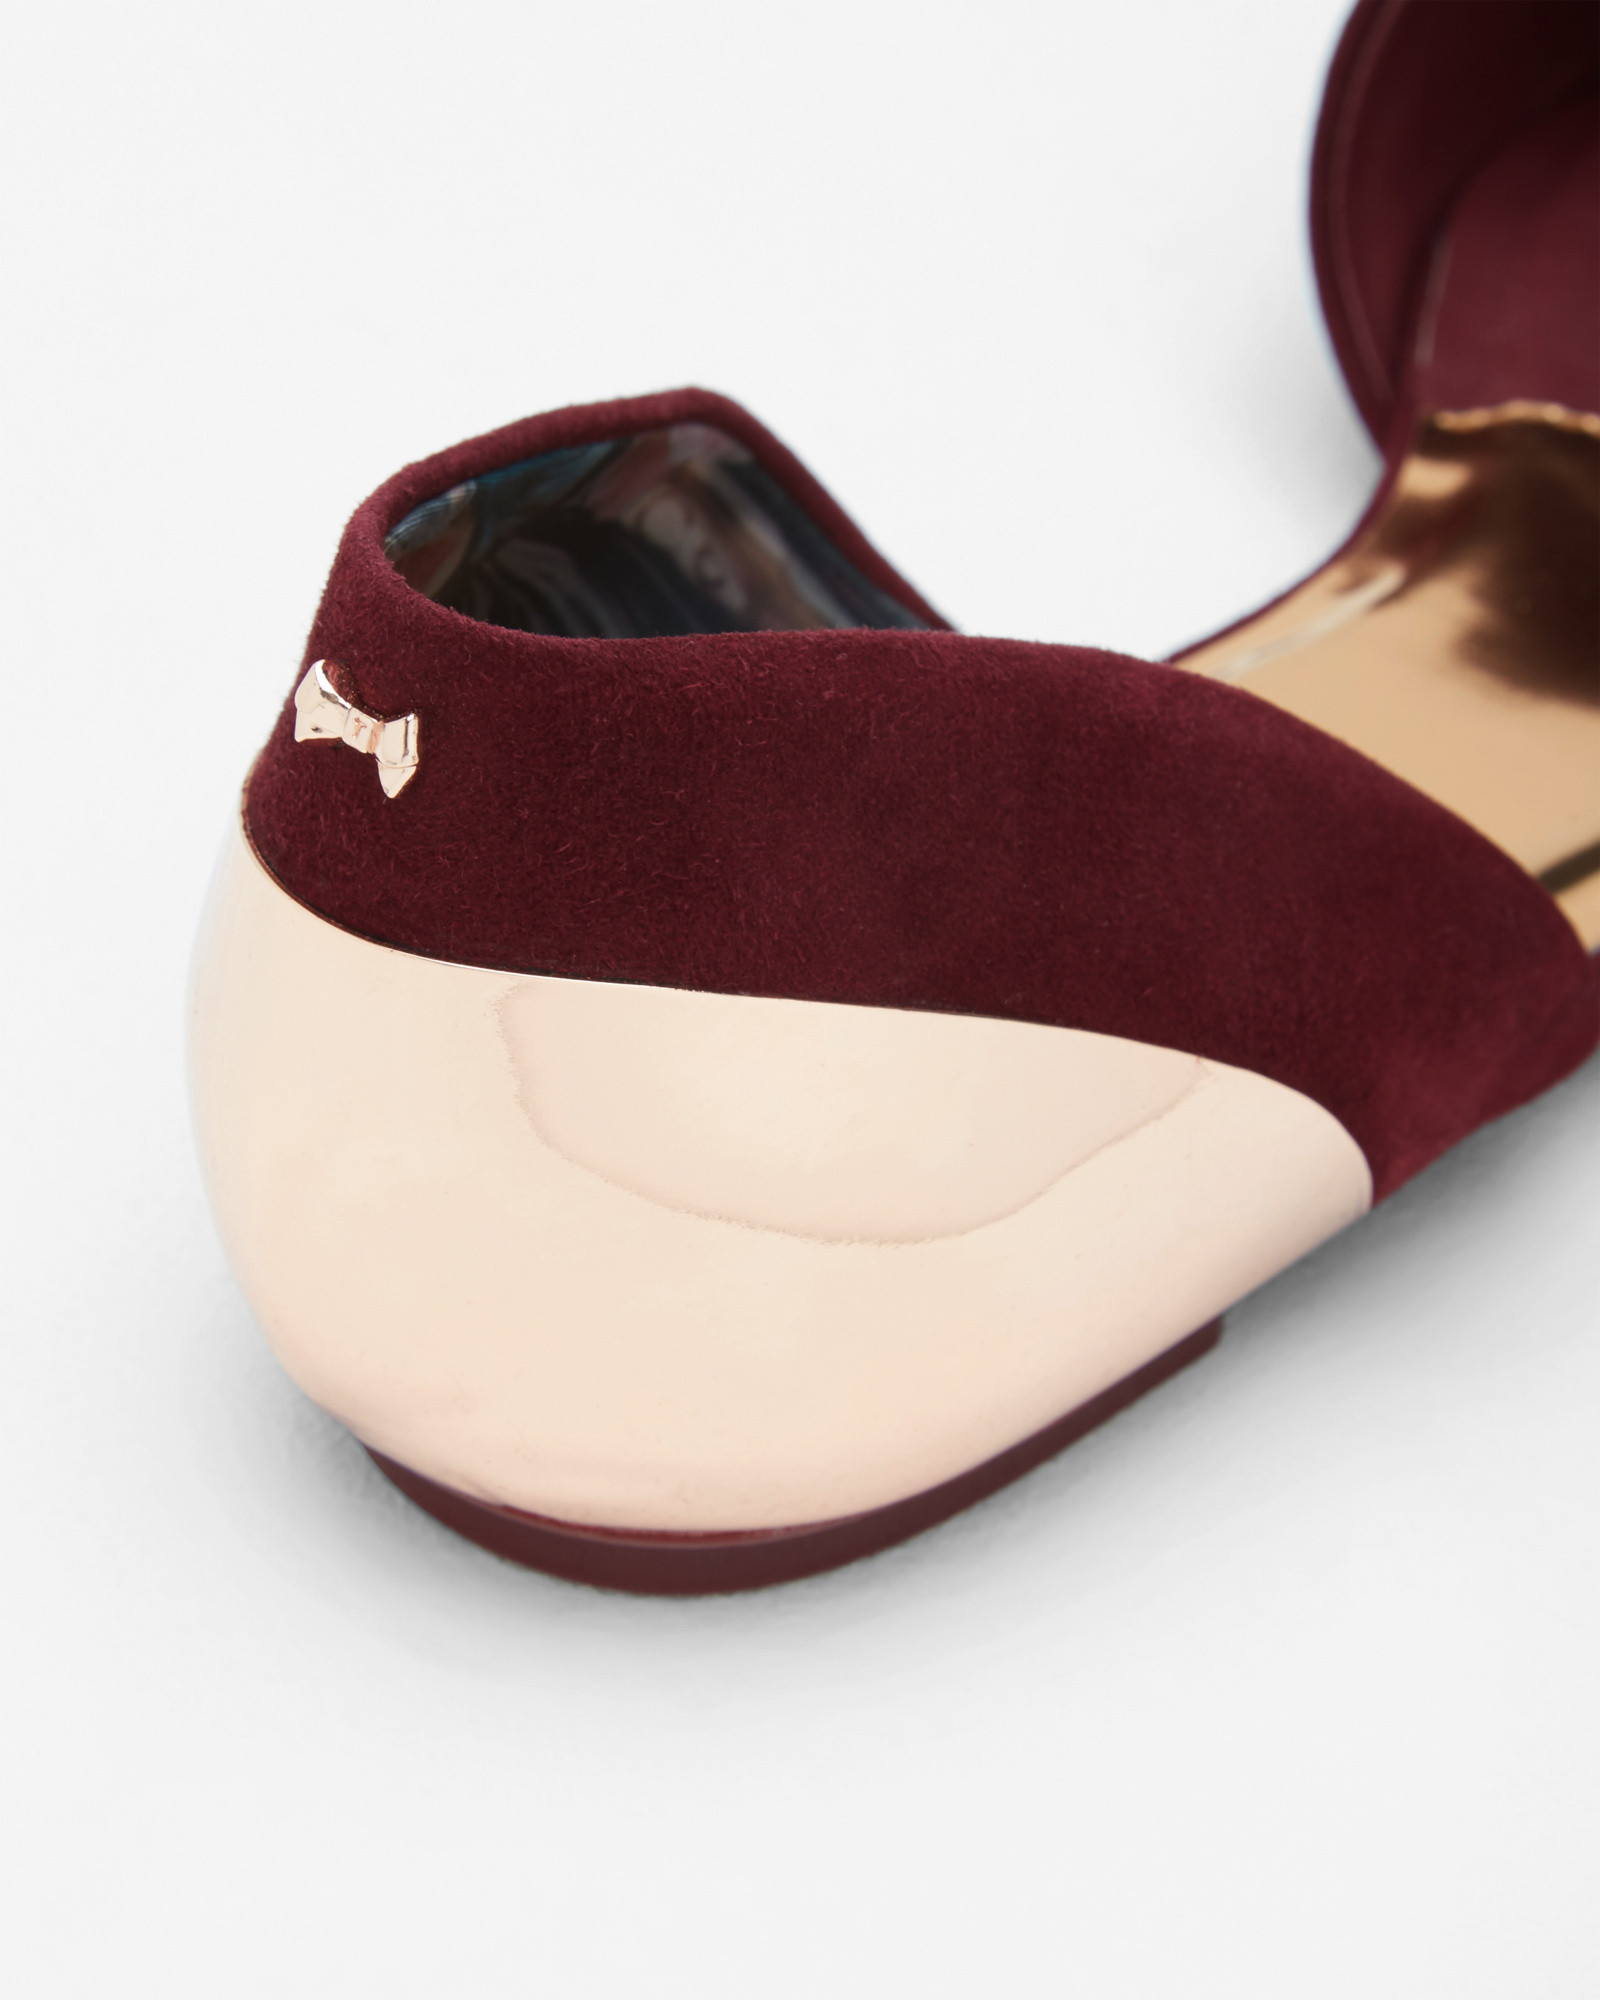 Ted Baker Black Shoes Pointed Flat